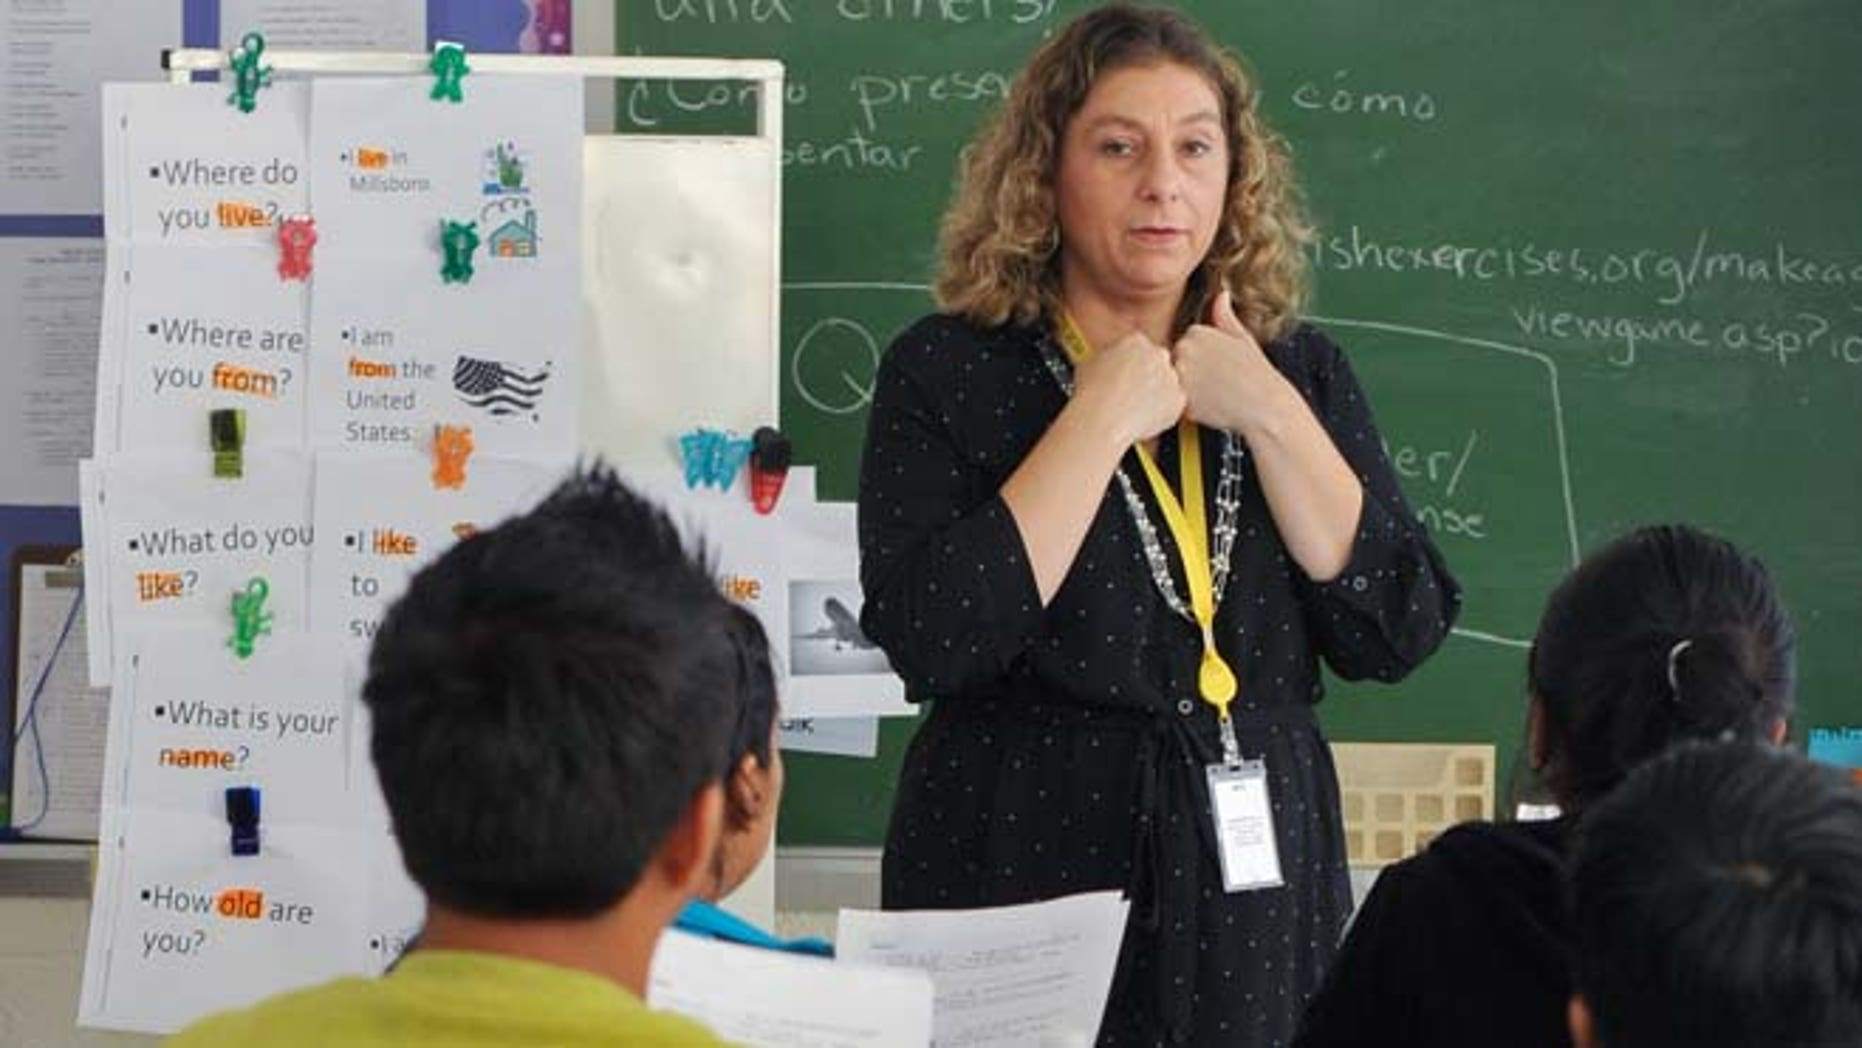 Sept. 11, 2014: In this photo, teacher Lori Ott, center, of Millsboro, Del., addresses students in the Accelerating Preliterate English Language Learners (A.P.E.L.L) class at the G.W. Career Educational Center in Frankford, Del.